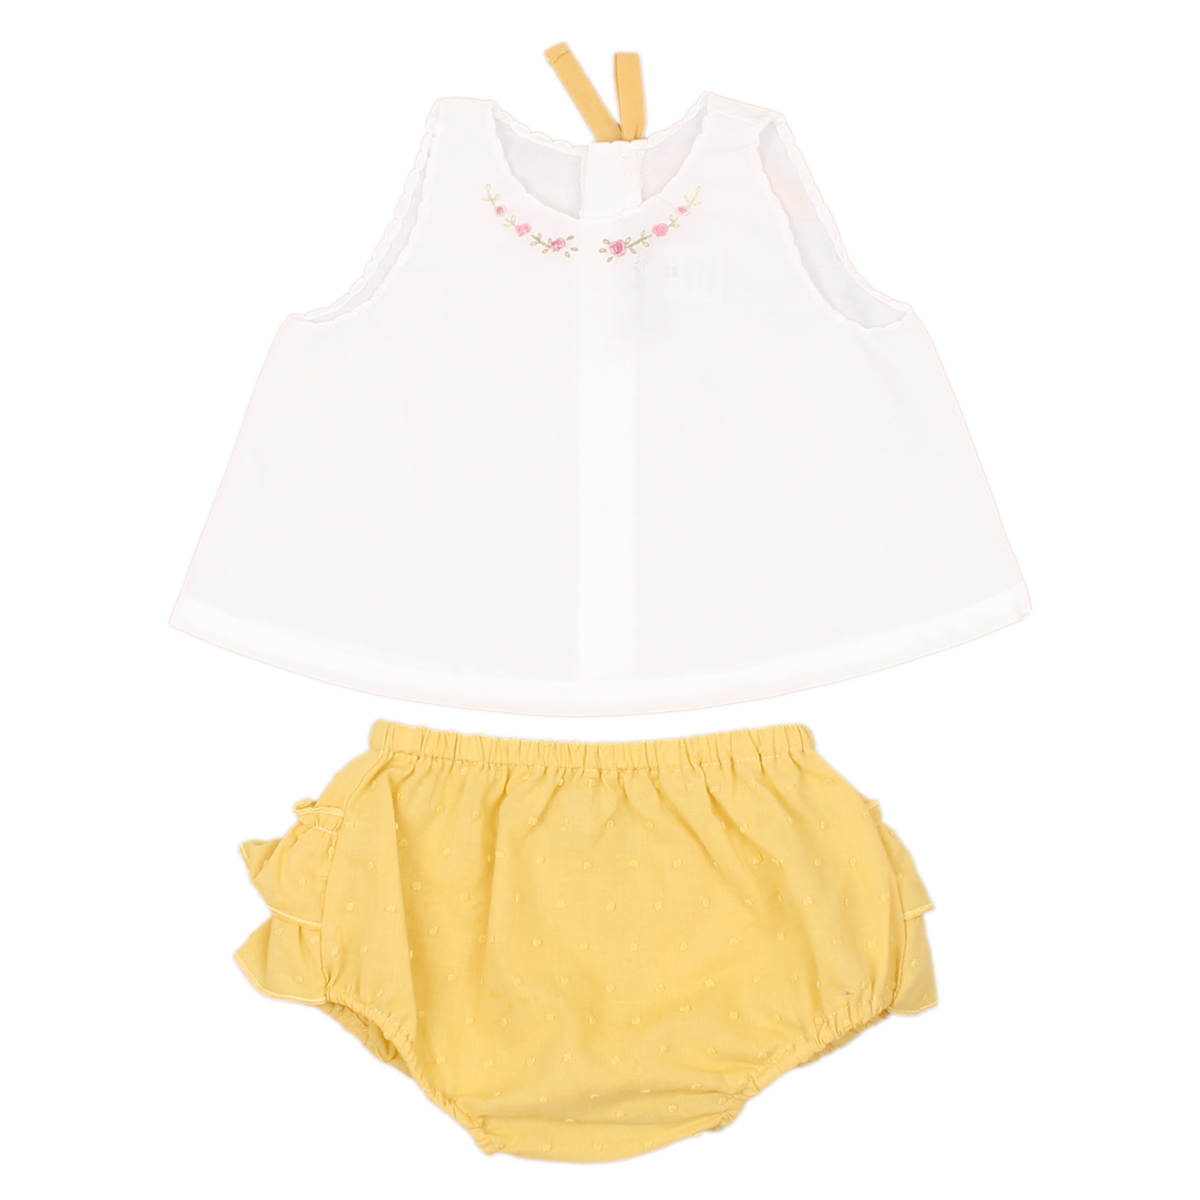 Poeme + Poesie White Top and Yellow Bloomer Set